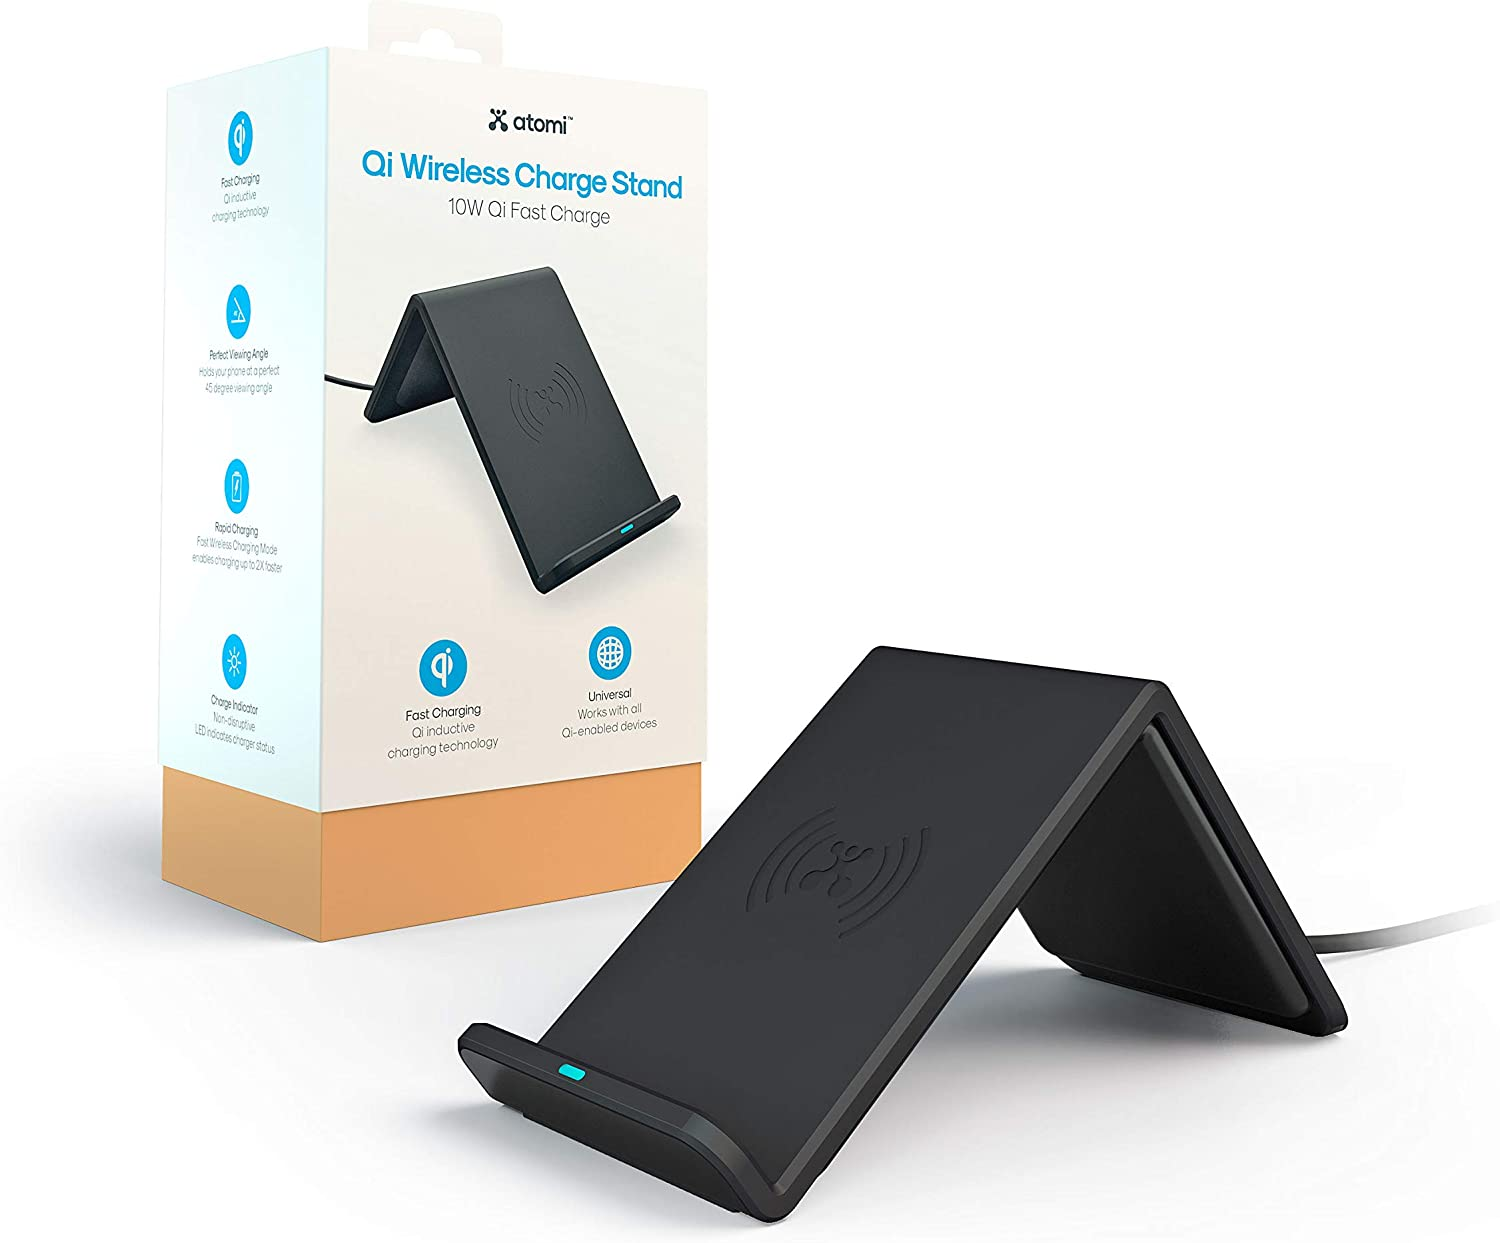 Atomi Qi Max 44% OFF Wireless Charge Stand Great interest - Fast Compa 10W